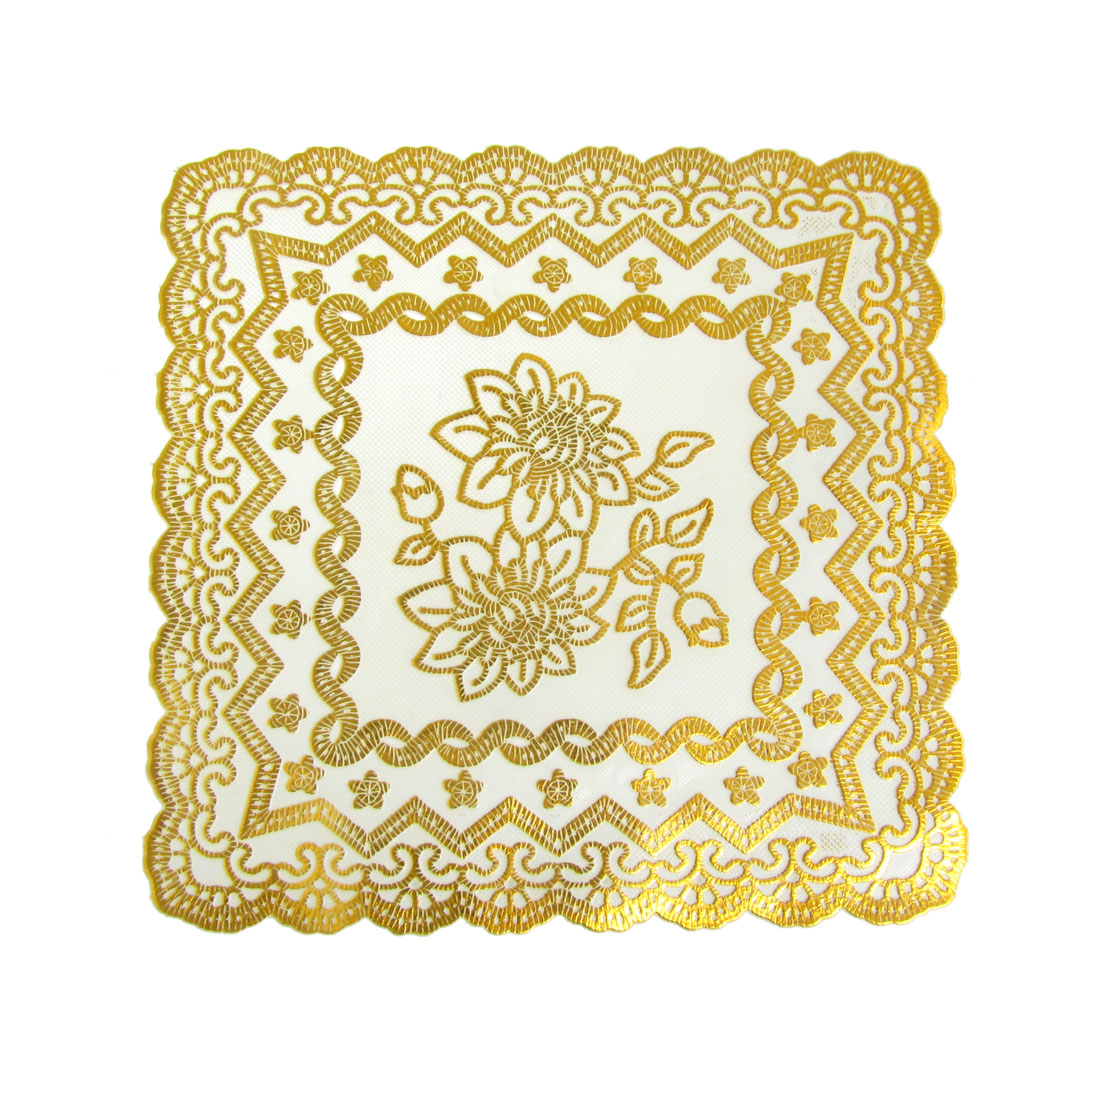 2 Pieces Square Flower Pattern Table Coasters Cup Mat Pad White Gold Tone